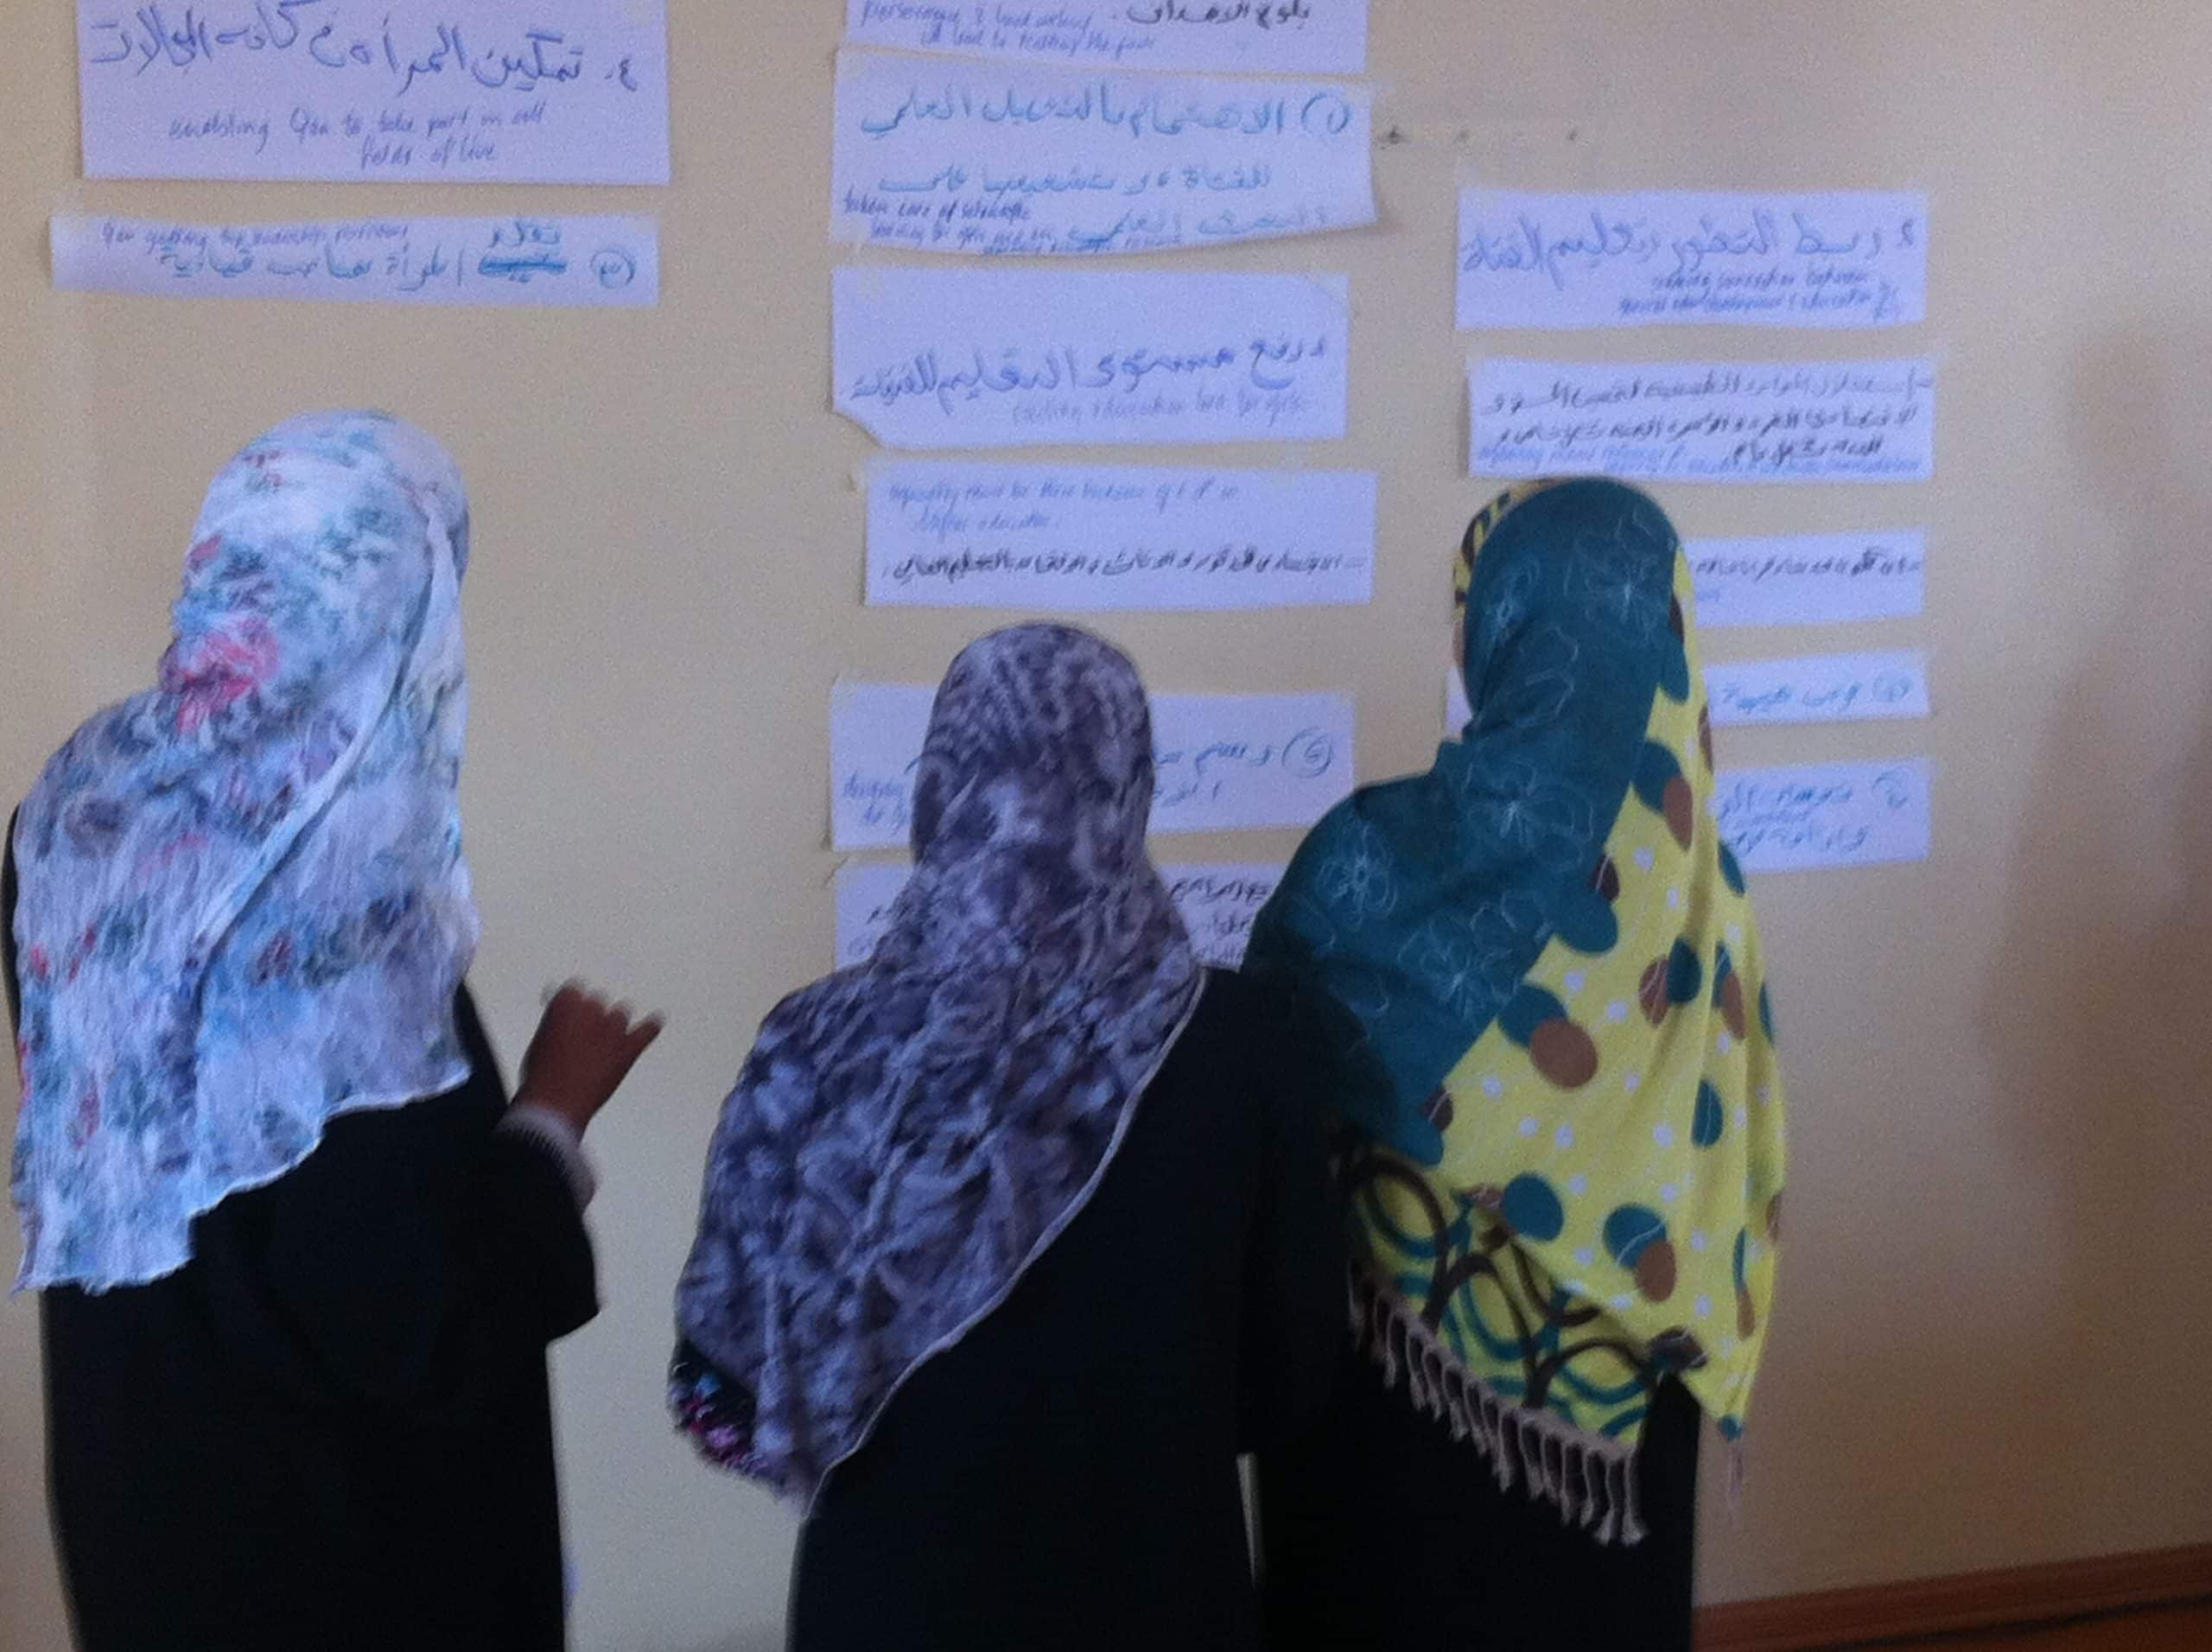 Participatory policy making instruments for the Higher Education sector, Yemen